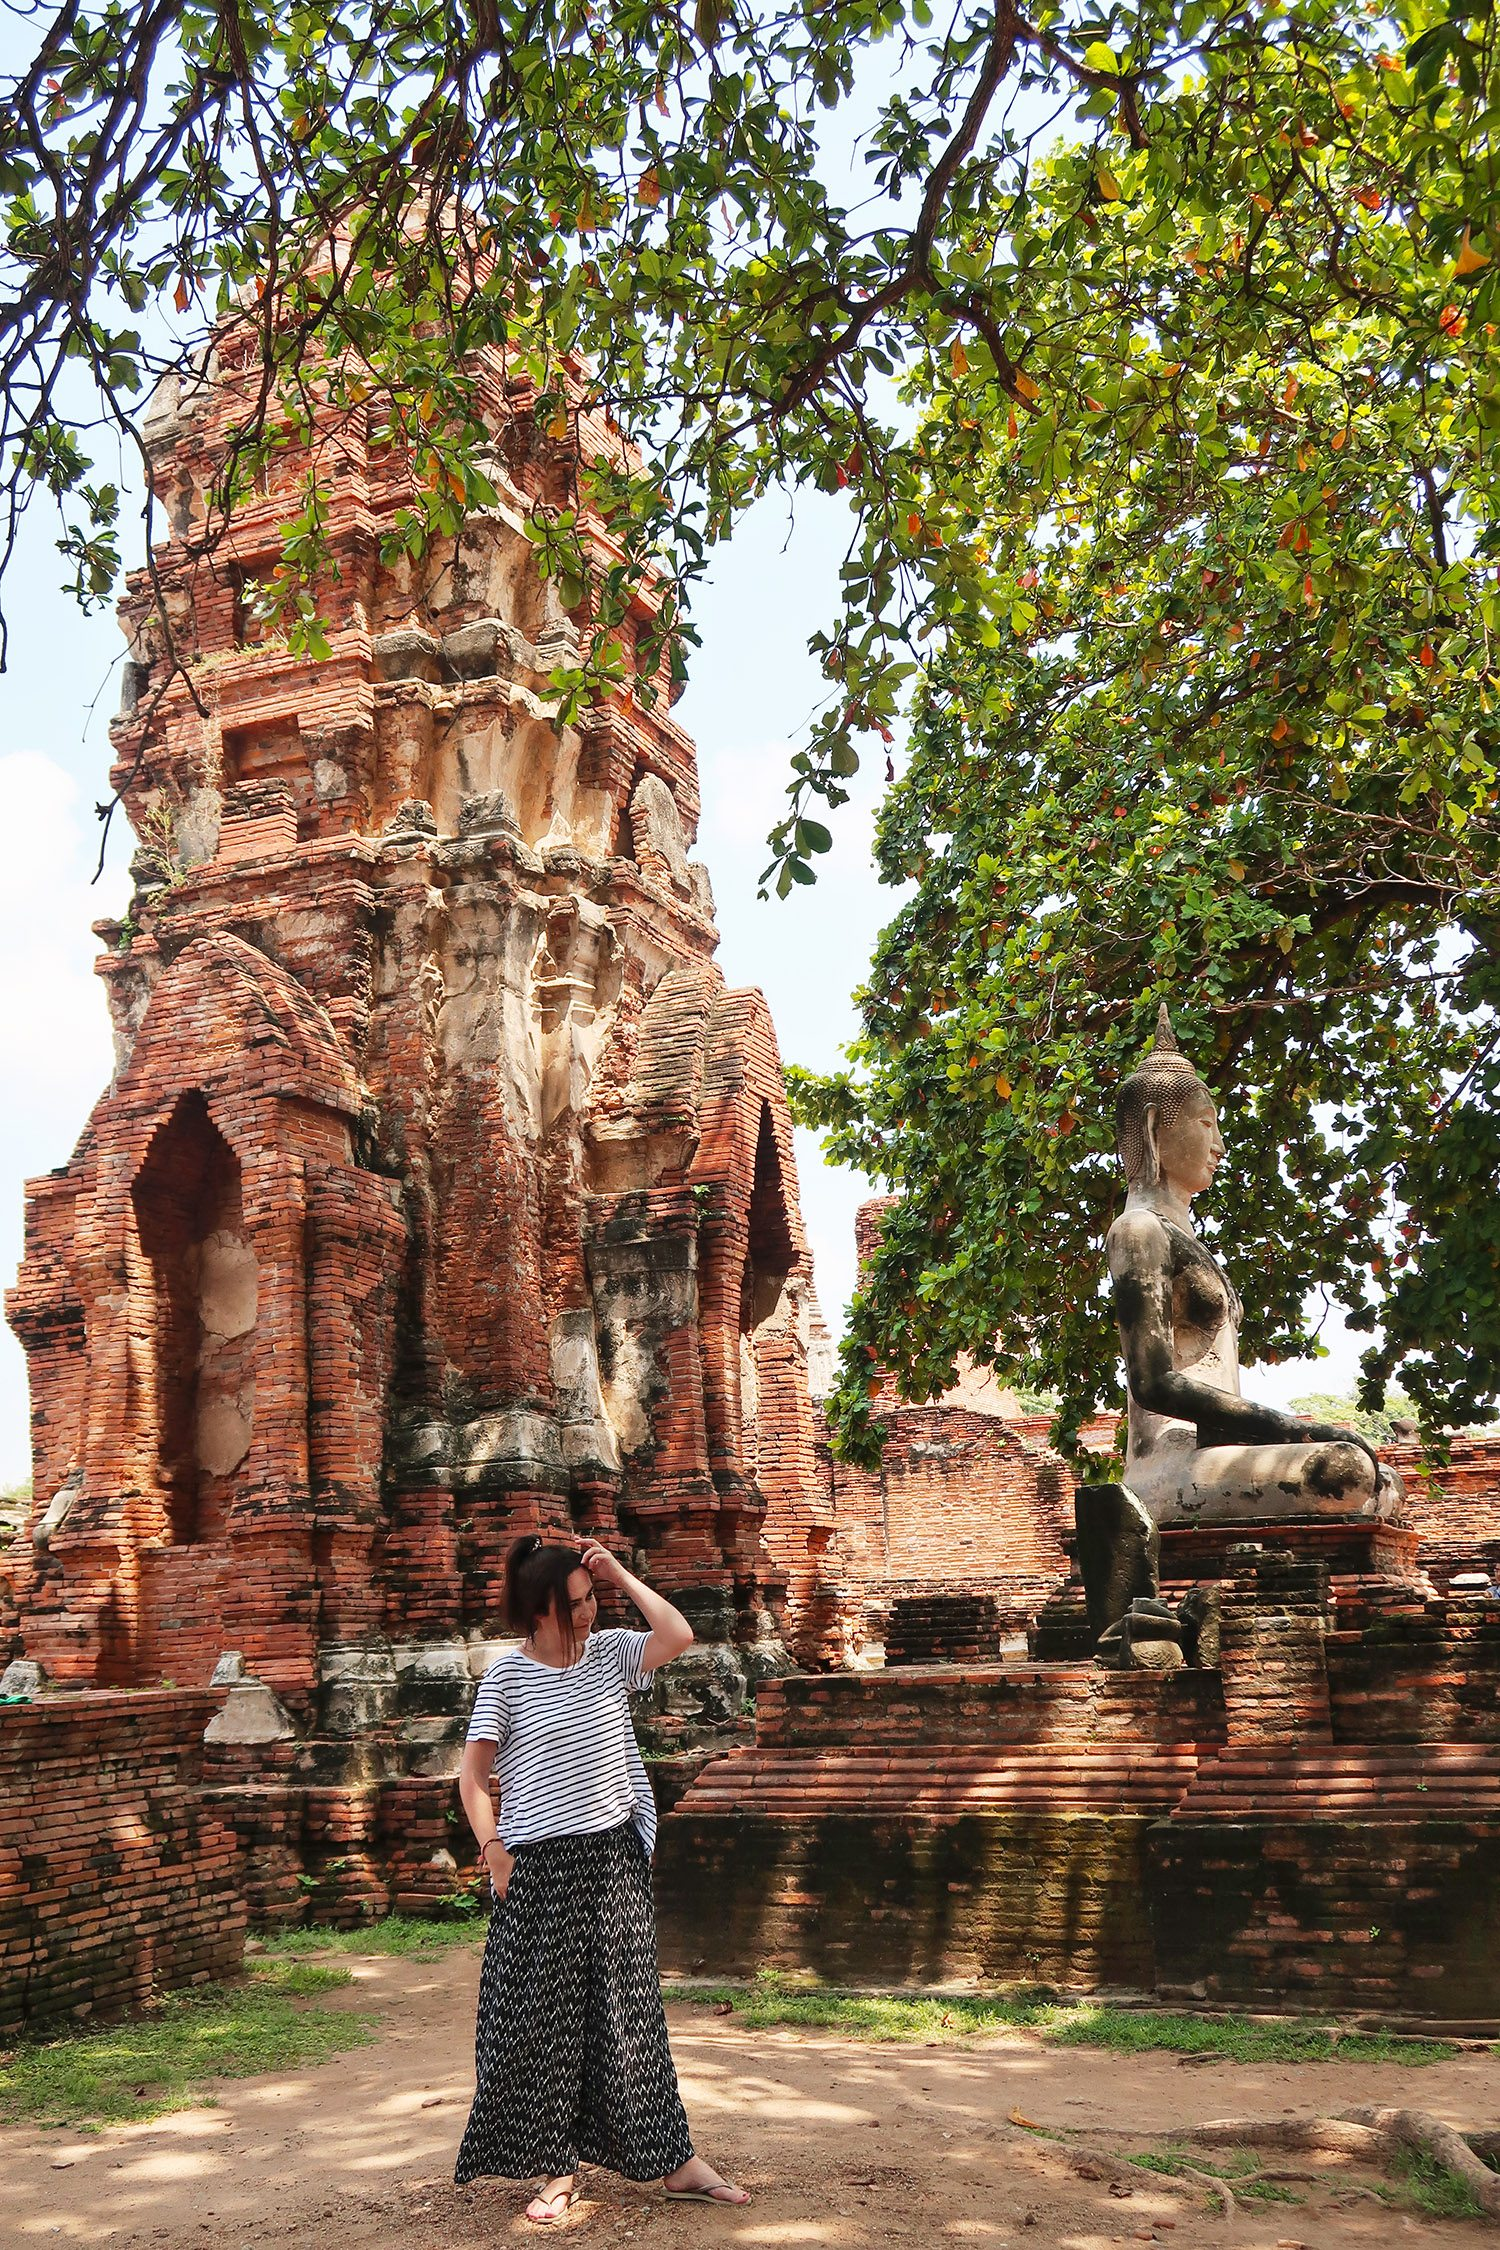 Temples in Ayutthaya